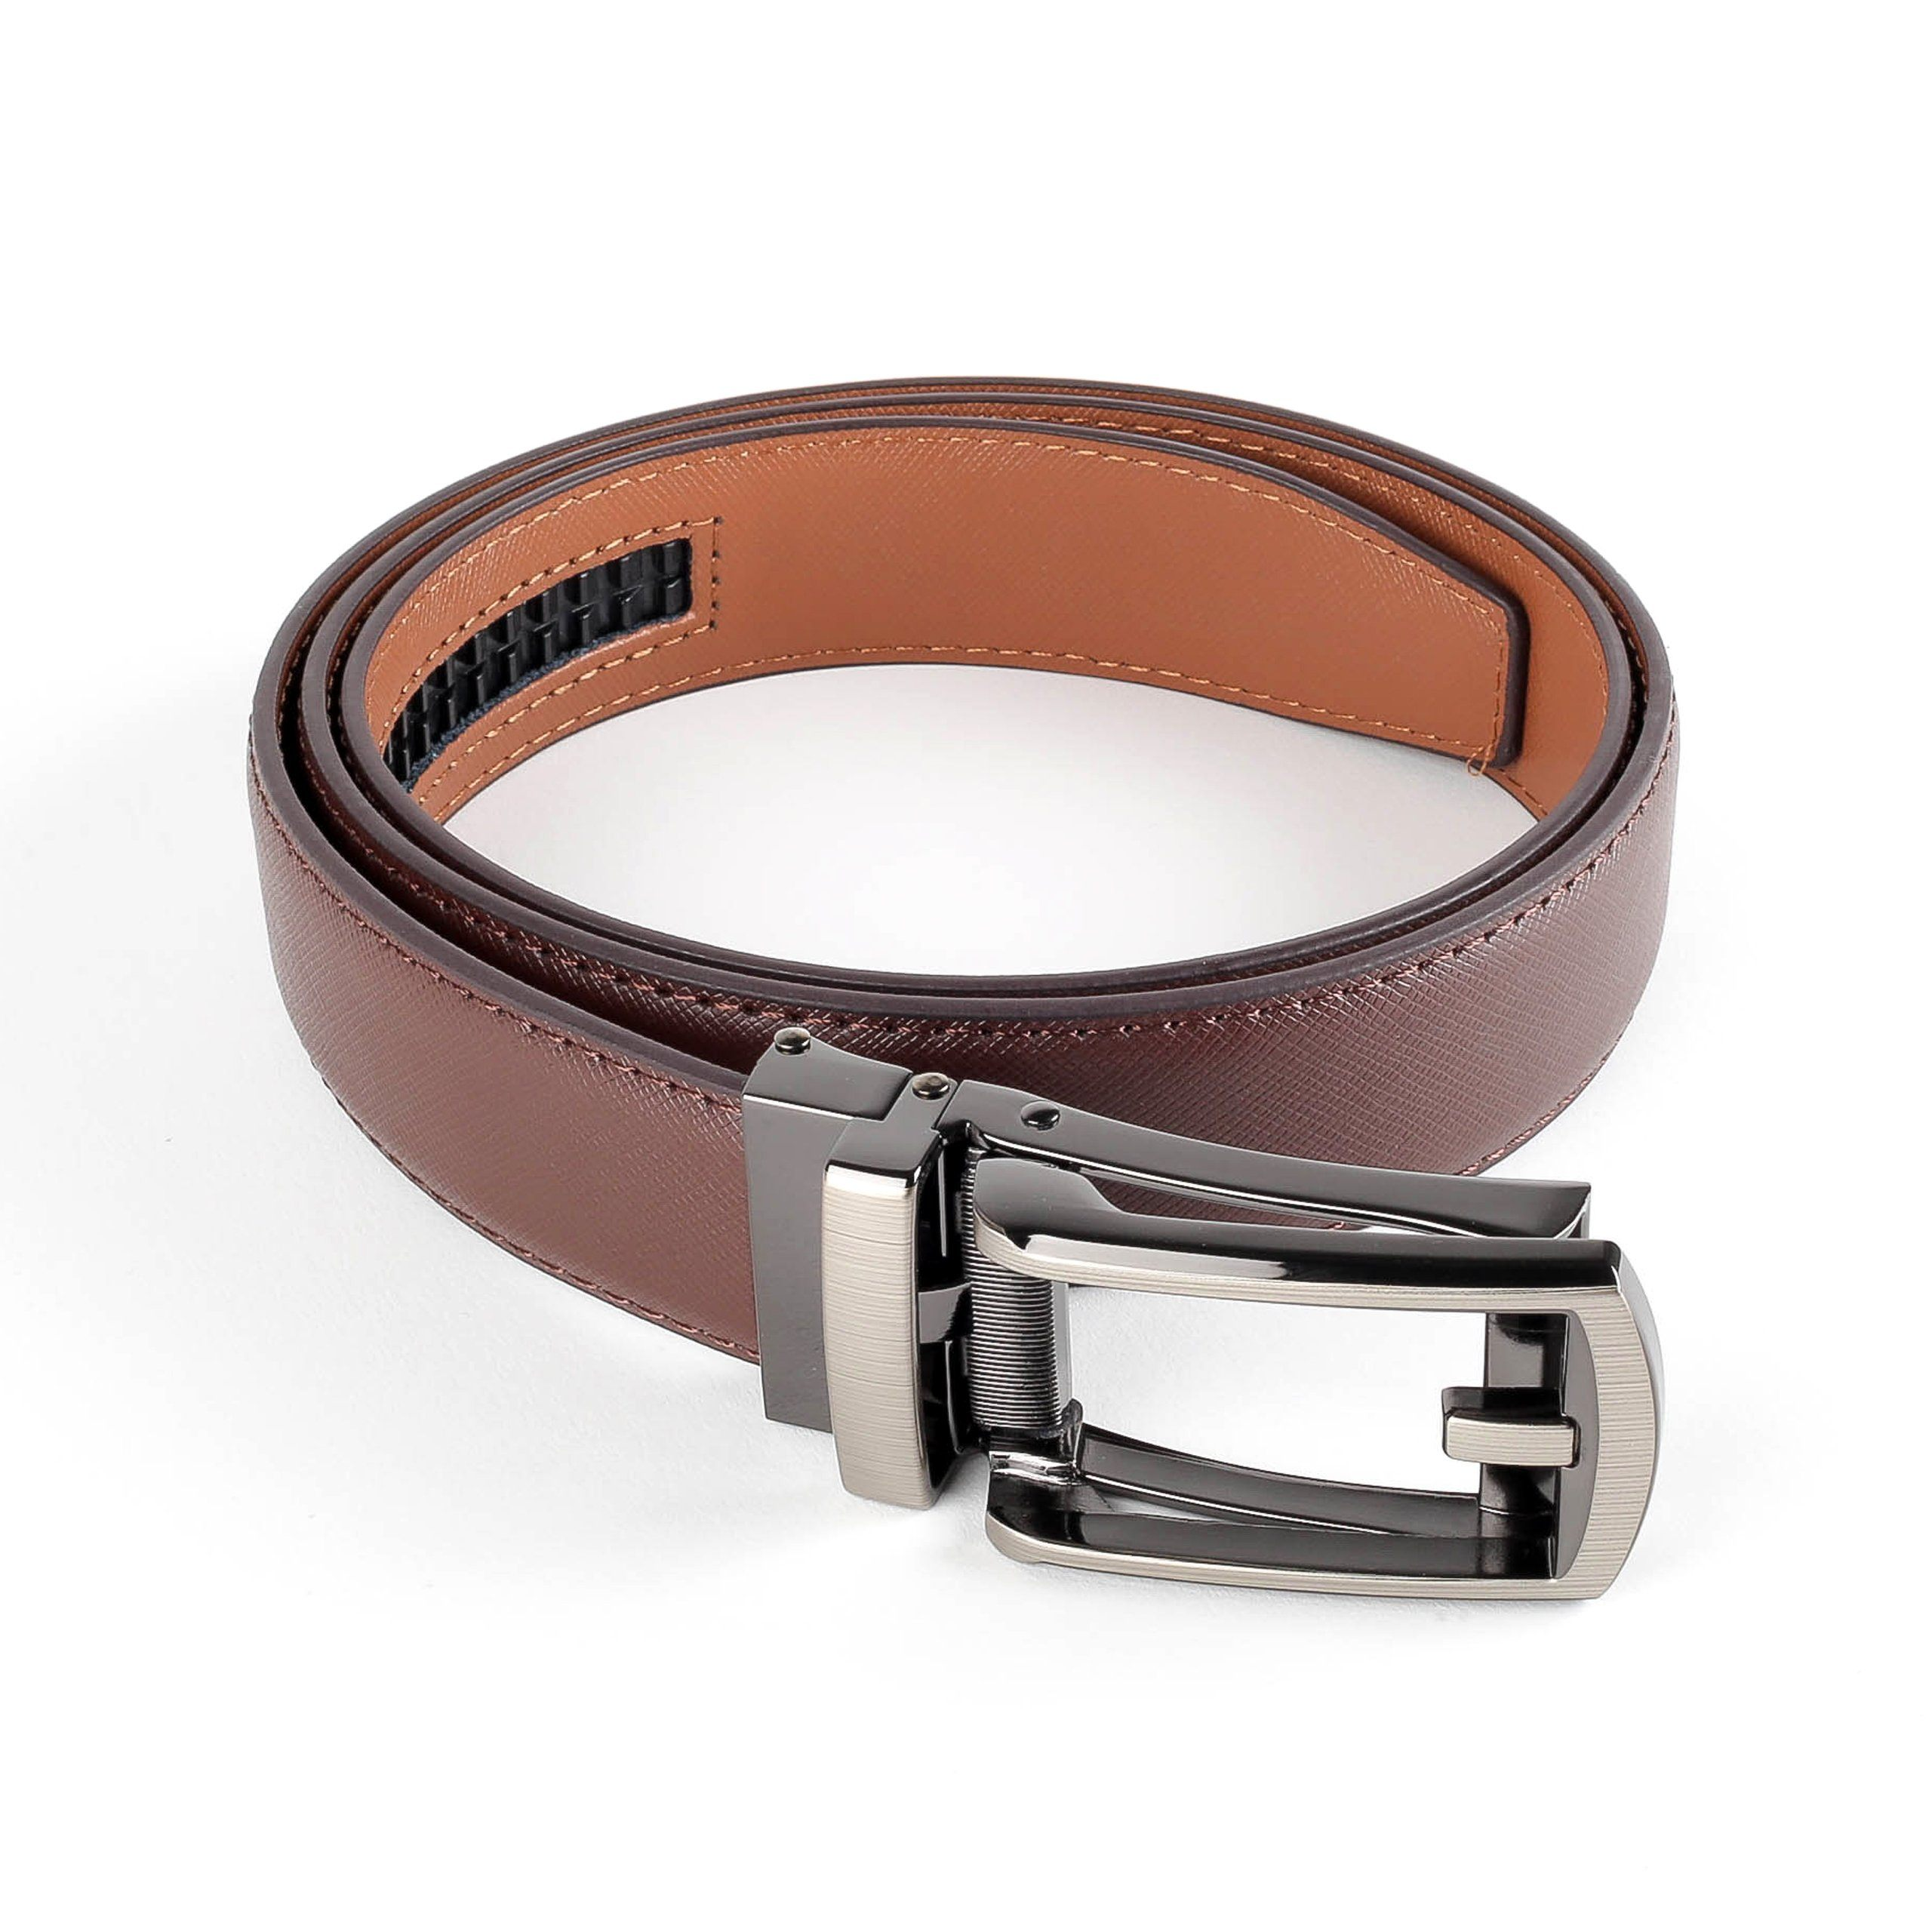 Loop Buckle Ratchet Leather Belt Belts Adesso Accessories